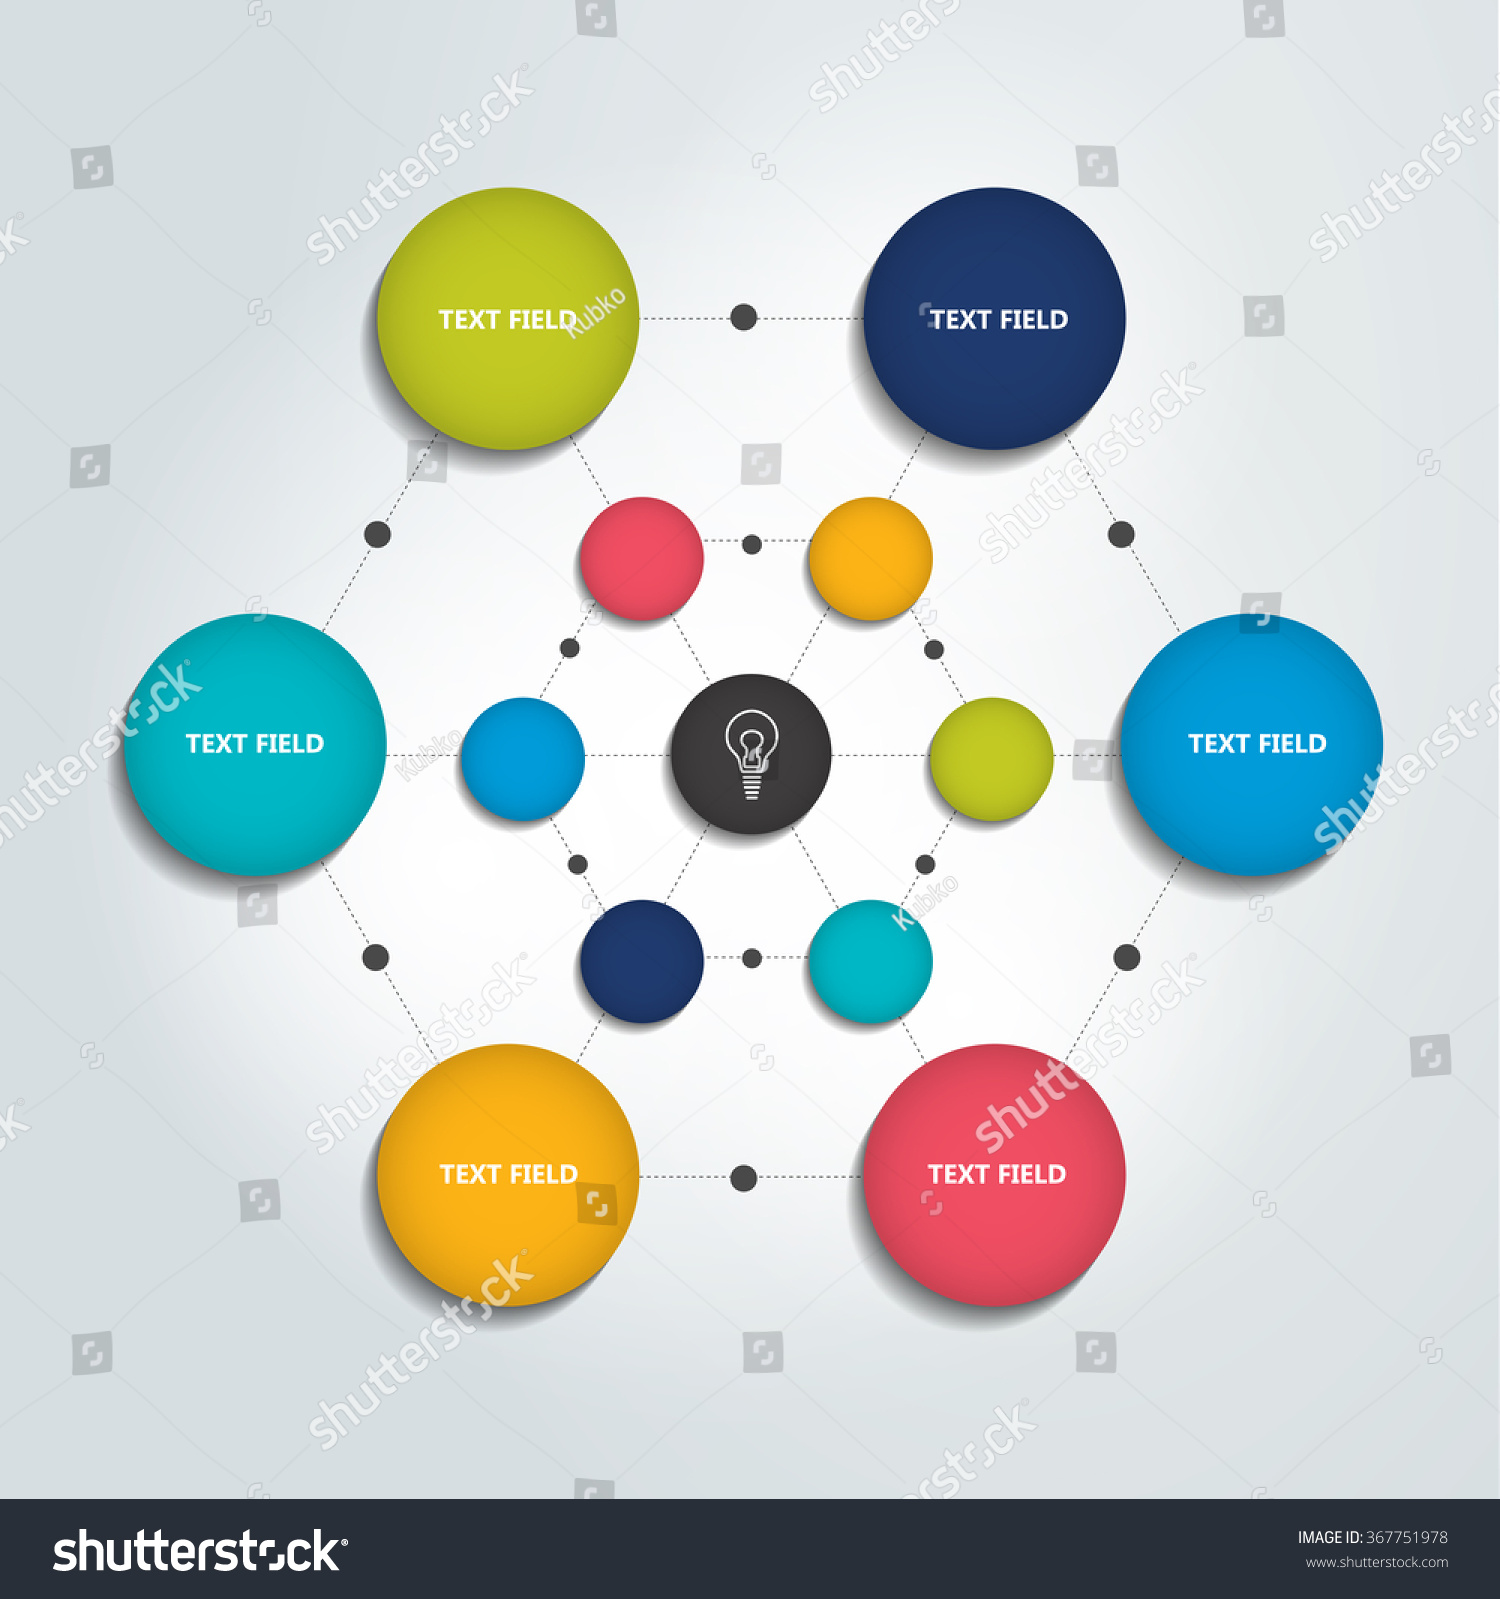 Infographic flow chart color circles chart stock vector 367751978 infographic flow chart color circles chart geenschuldenfo Image collections